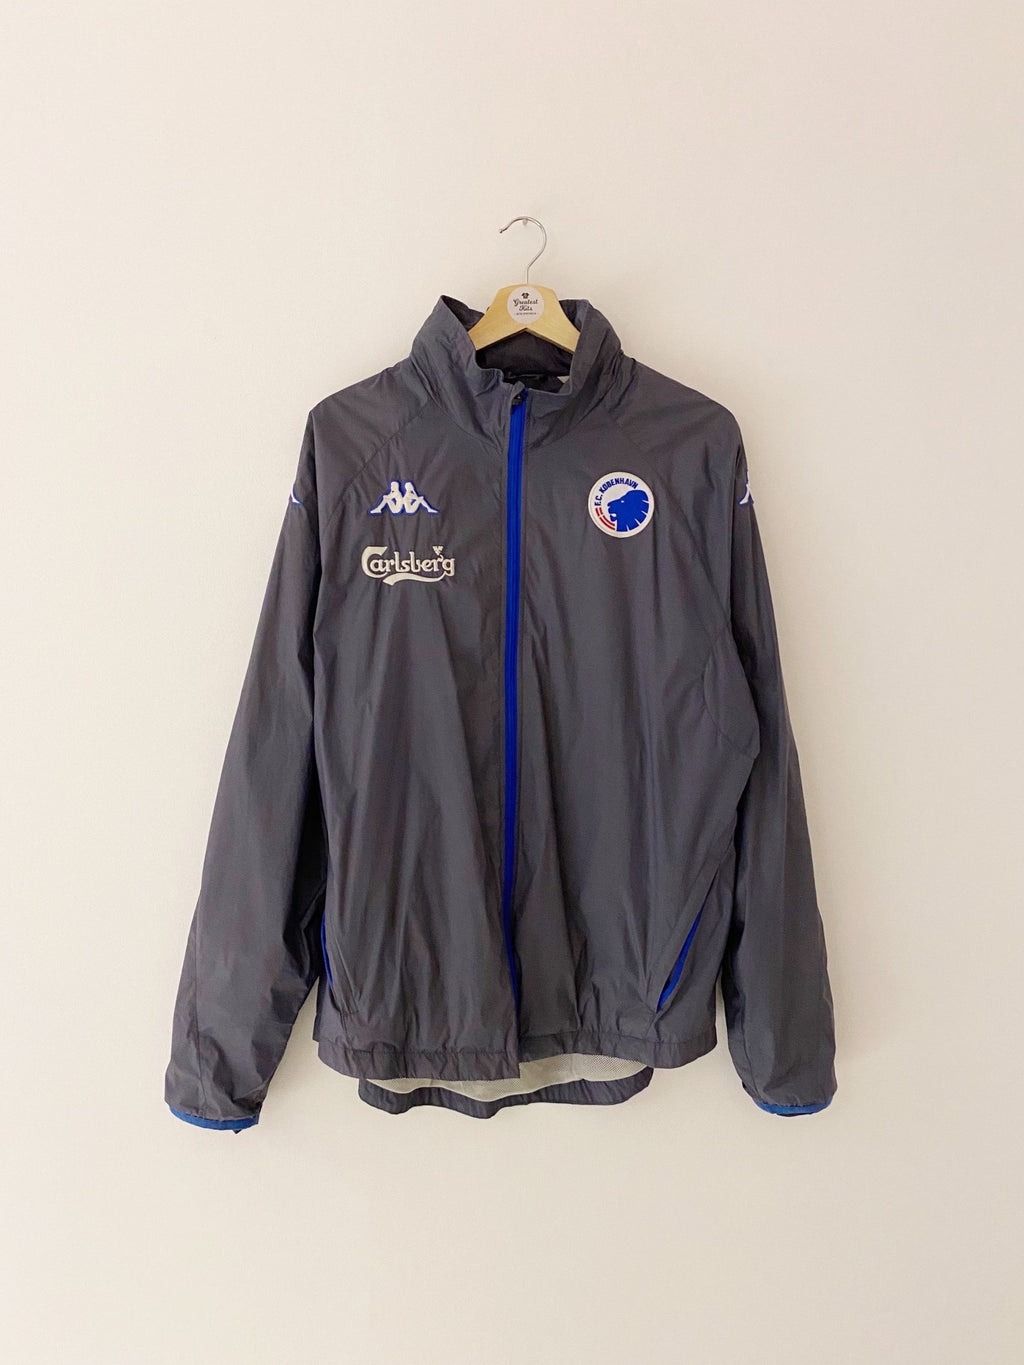 2008/09 FC Copenhagen Training Jacket (L) 9/10